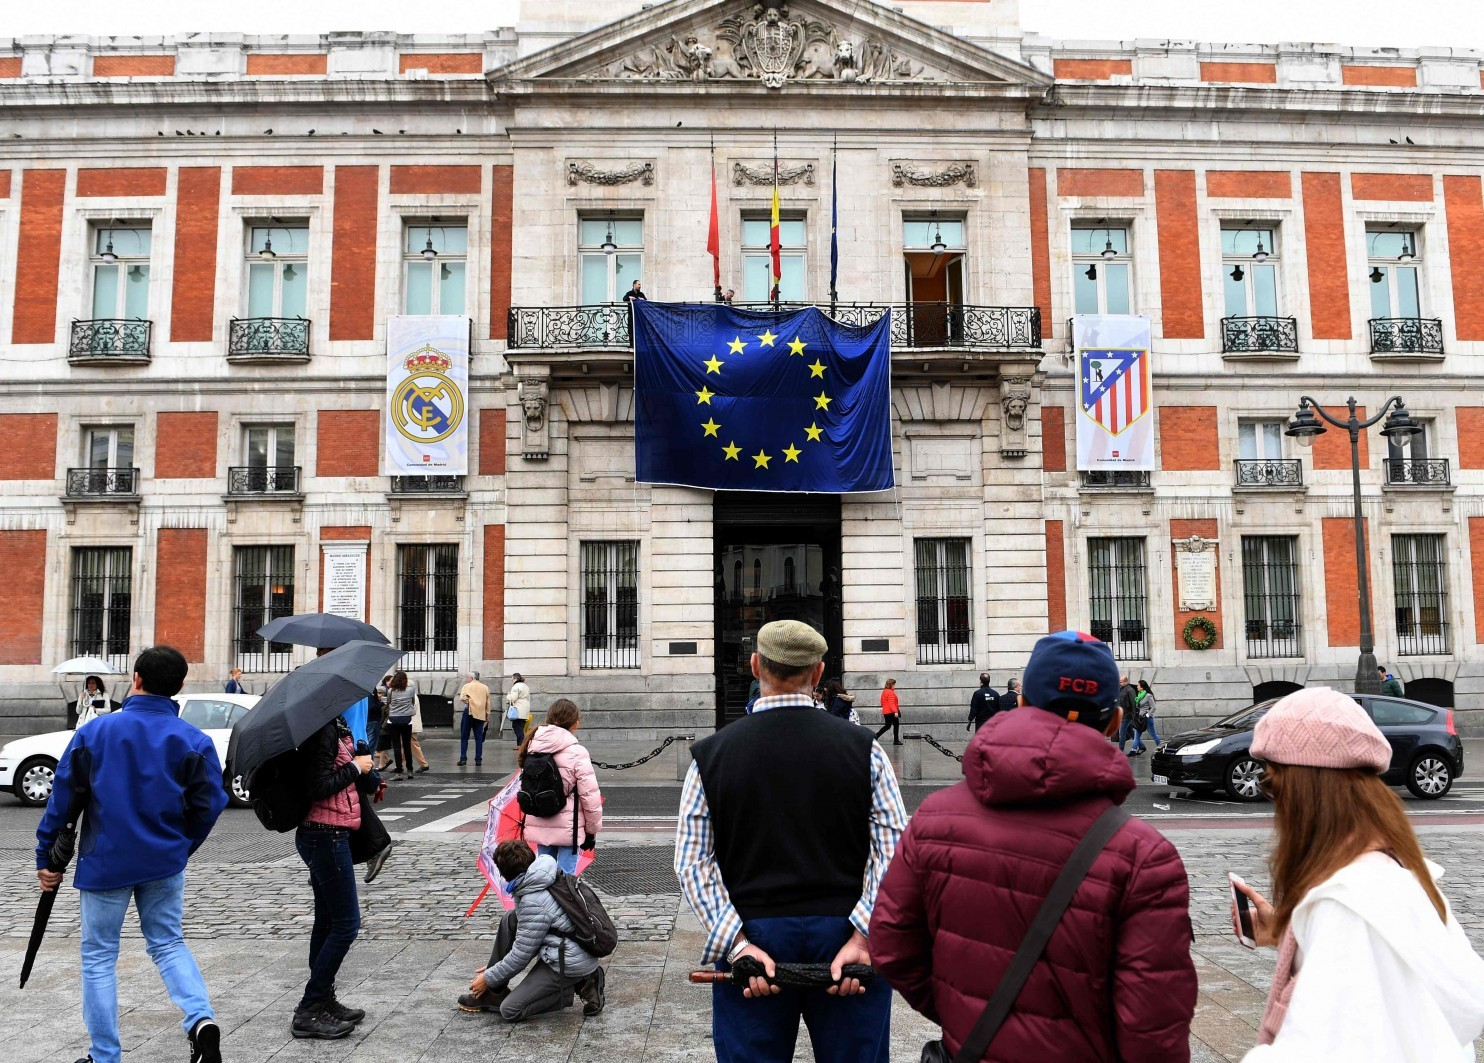 The European Union flag is displayed between two soccer club banners on the Royal Post Office, the seat of the office of the president of Madrid. (Gerard Julien/Agence France-Presse via Getty Images)